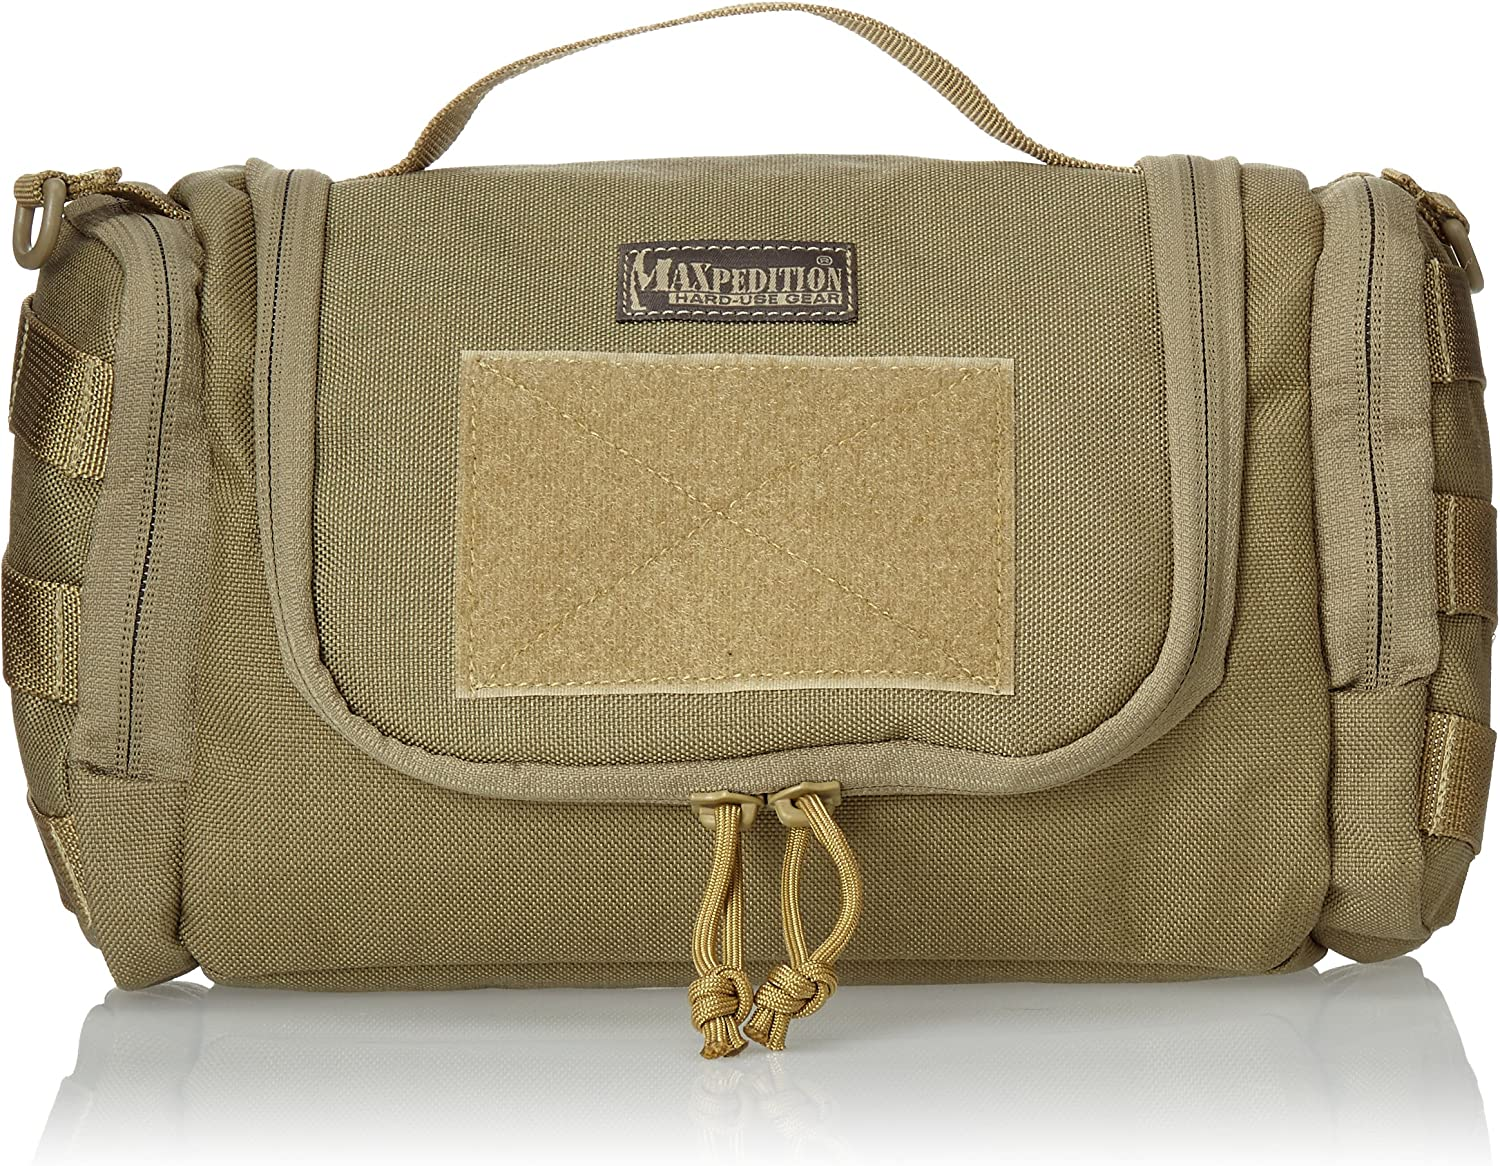 Maxpedition Gear Gorgeous Aftermath Ranking TOP2 Toiletries Bag Compact